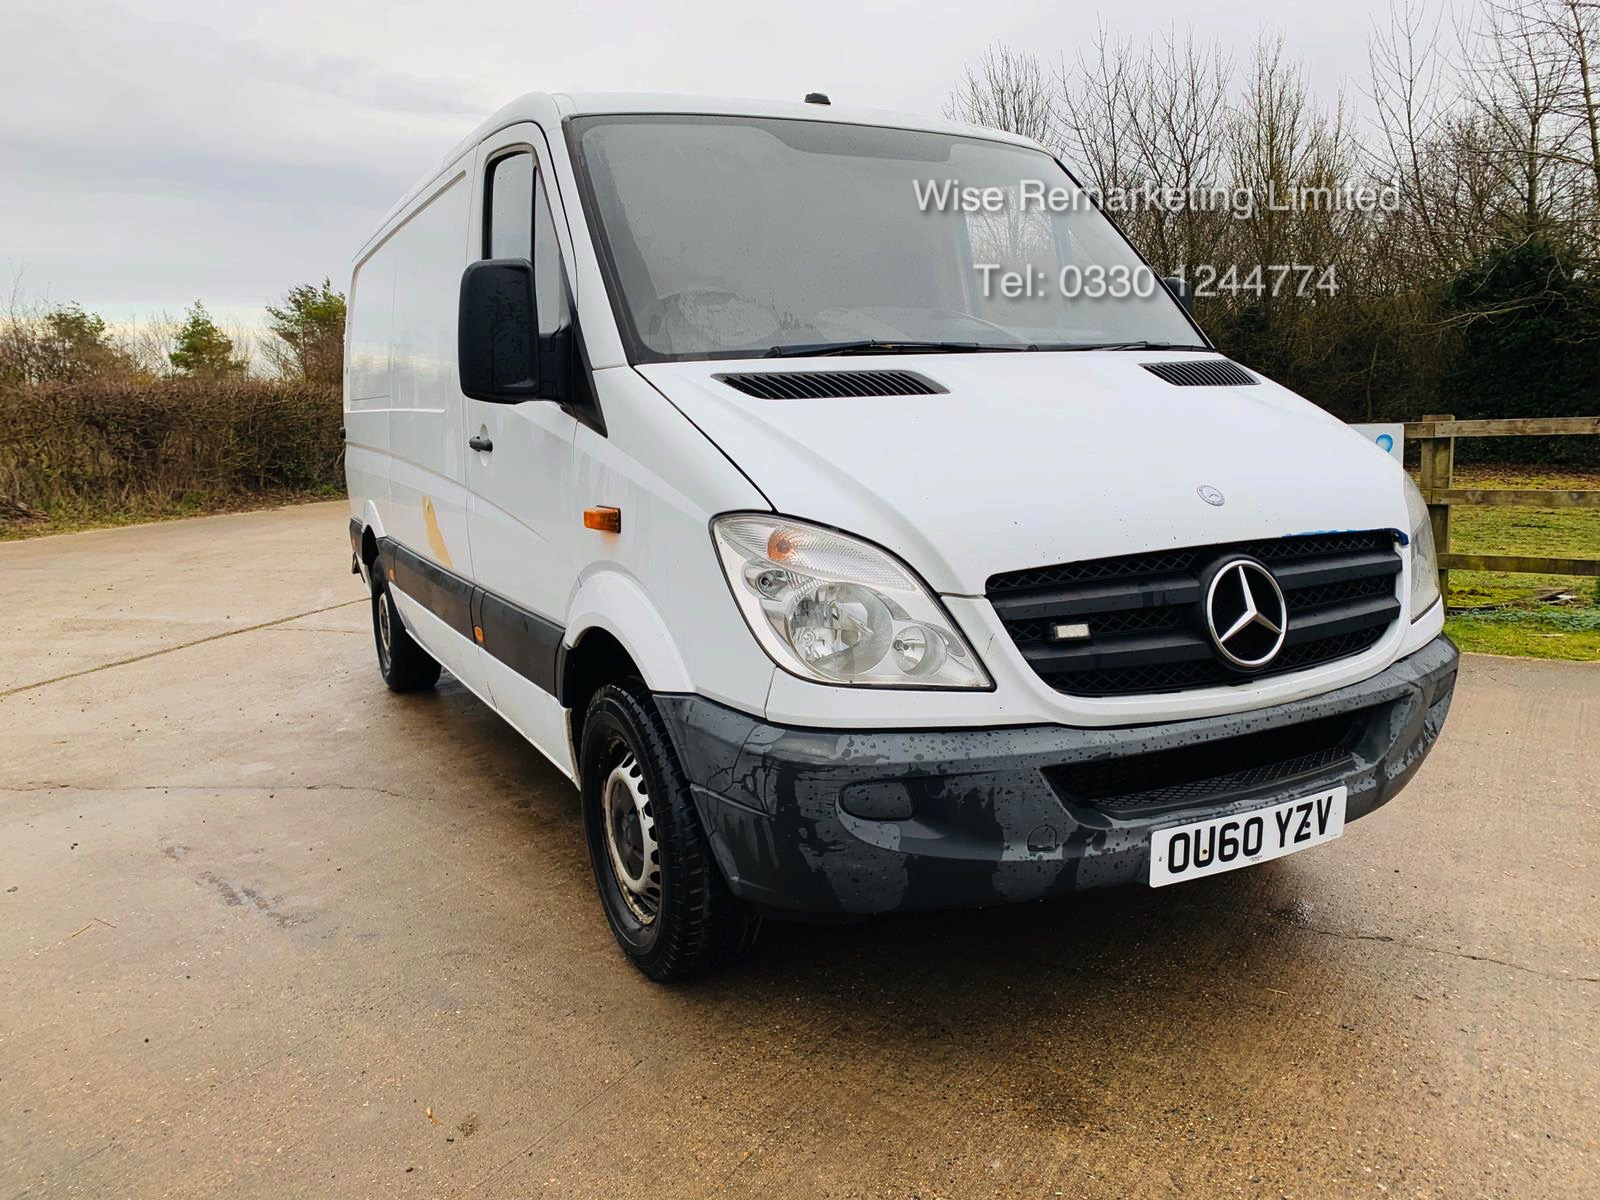 Reserve Met Mercedes Sprinter 313 CDI 2.1 TD *Automatic Triptronic Gearbox* - 2011 Model - Ply Lined - Image 5 of 15